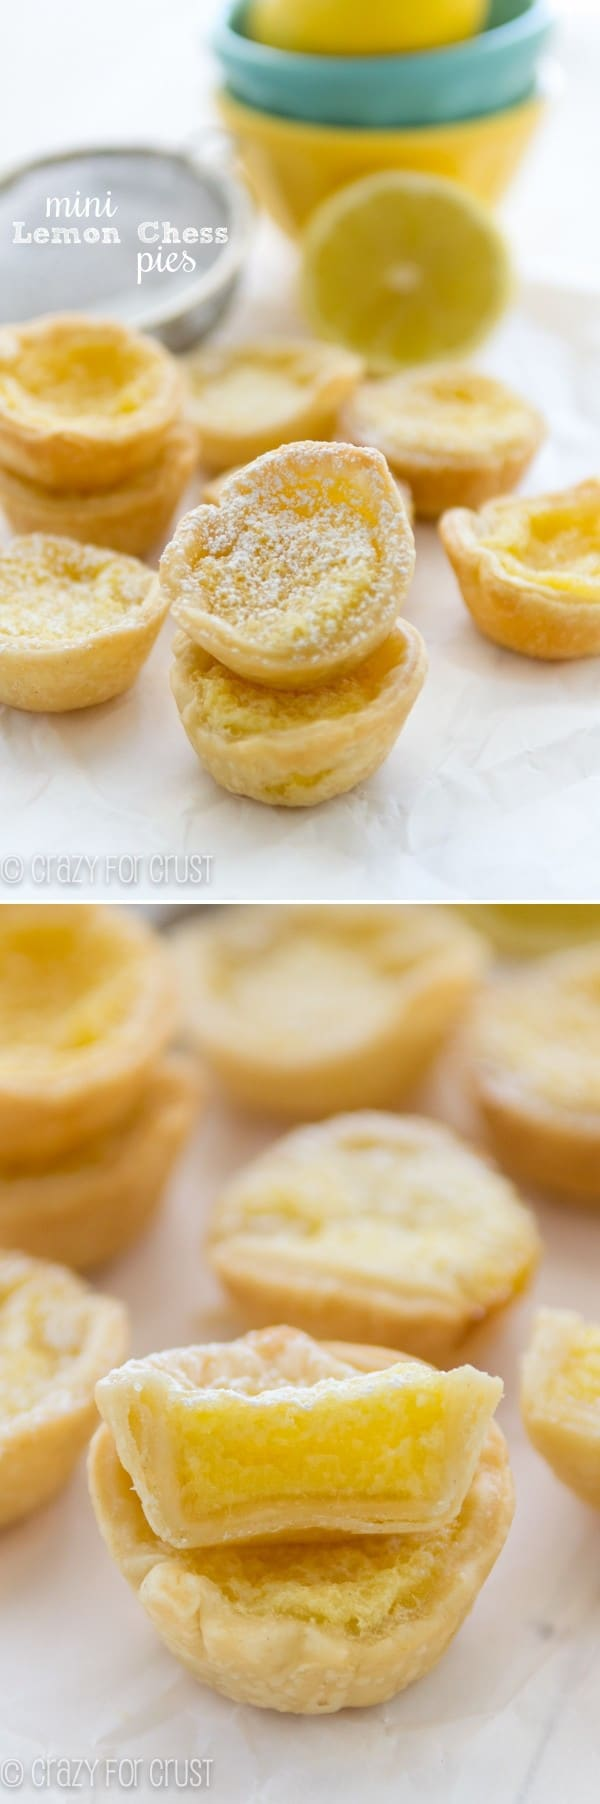 The PERFECT Mini Lemon Chess Pies!